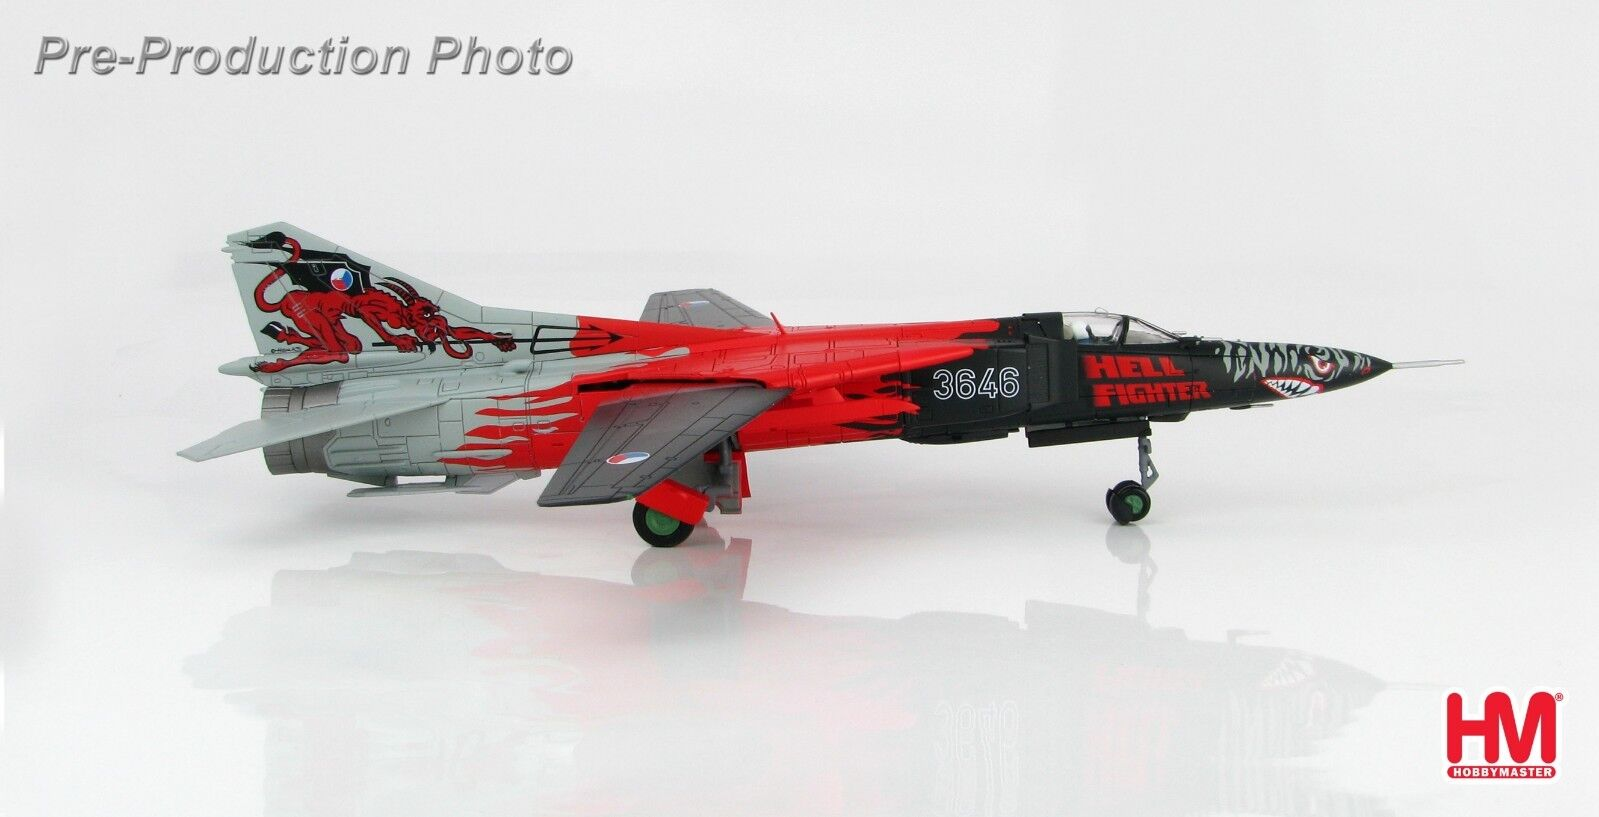 Hobby Master HA5307,MIG-23MF Flogger Hell Fighter 3646, Czech Republic Air For